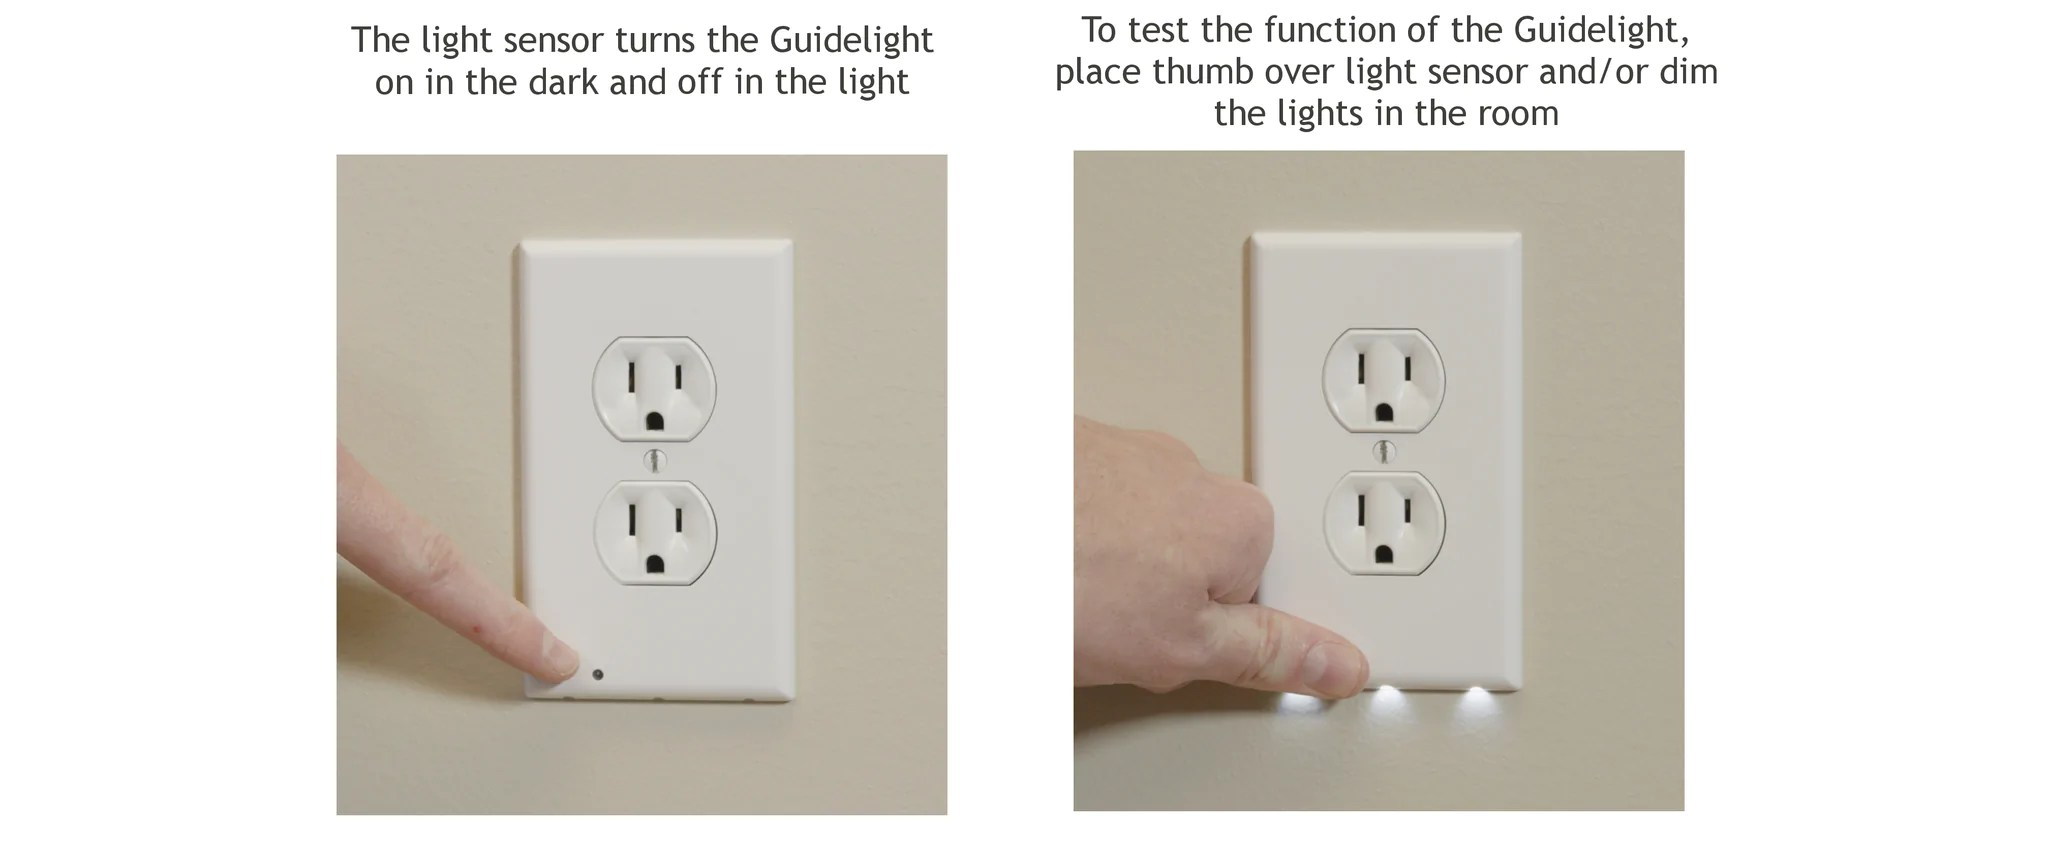 medium resolution of if your guidelight is still not working try adjusting the screw that attaches the guidelight to the outlet either tightening or loosening this screw can